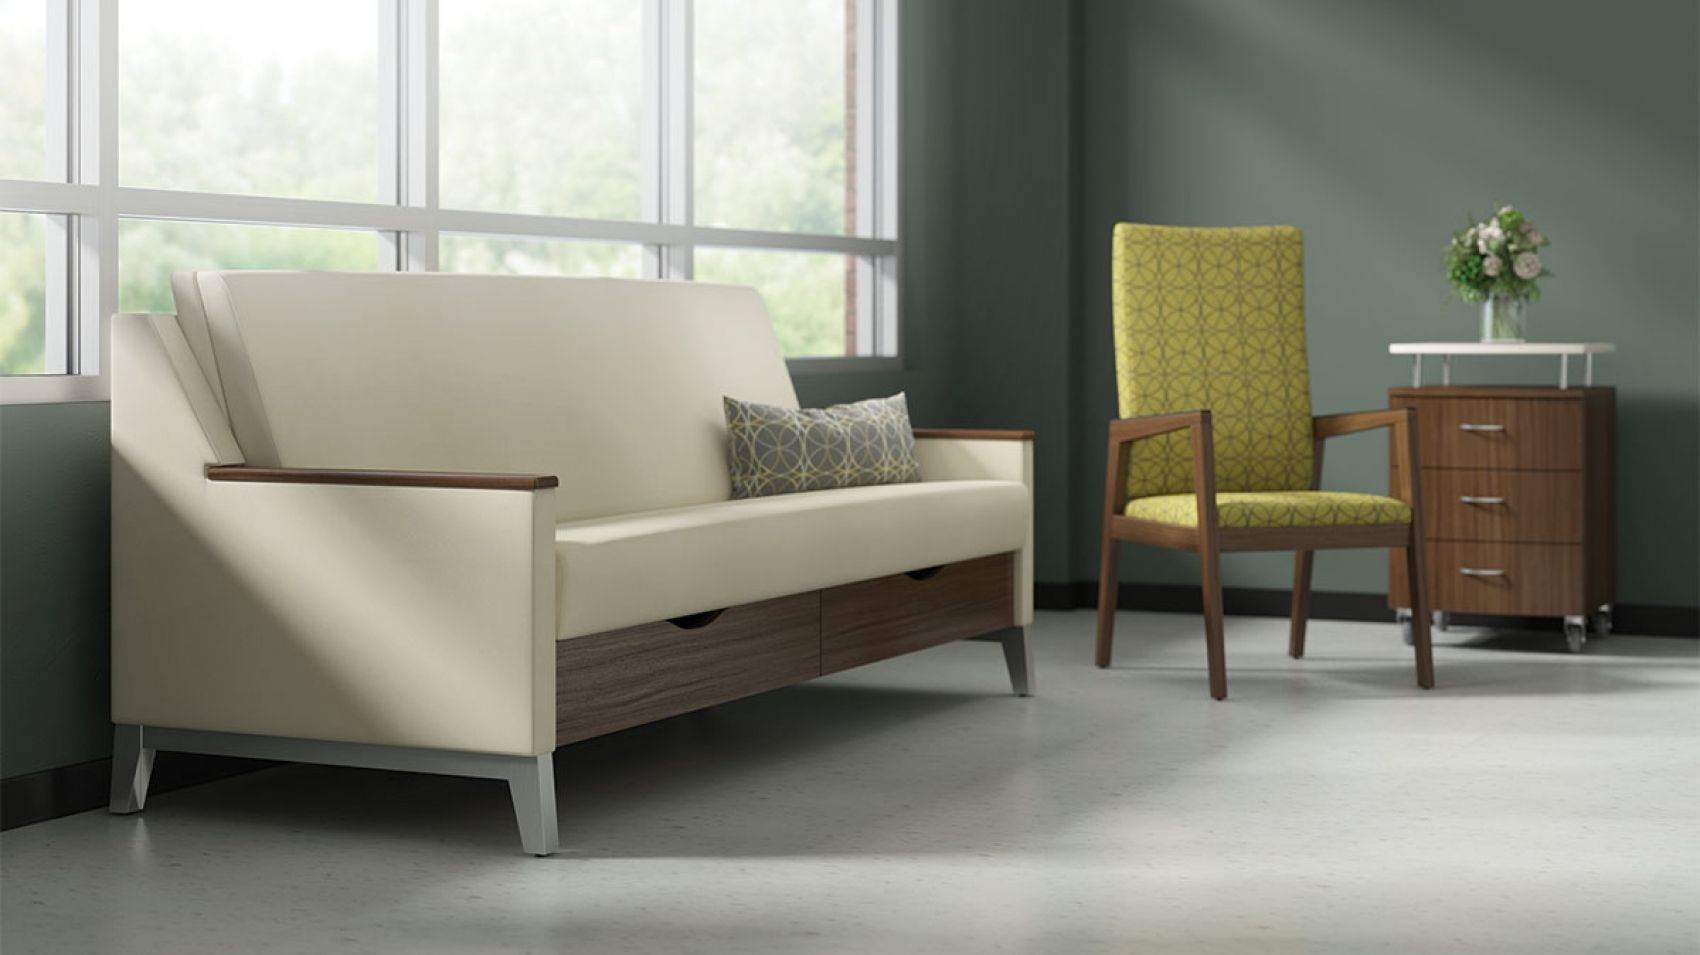 Wonderful Reverie | Healthcare Solutions From Meadows Office Preferred Partner, Carolina  Business Furniture.